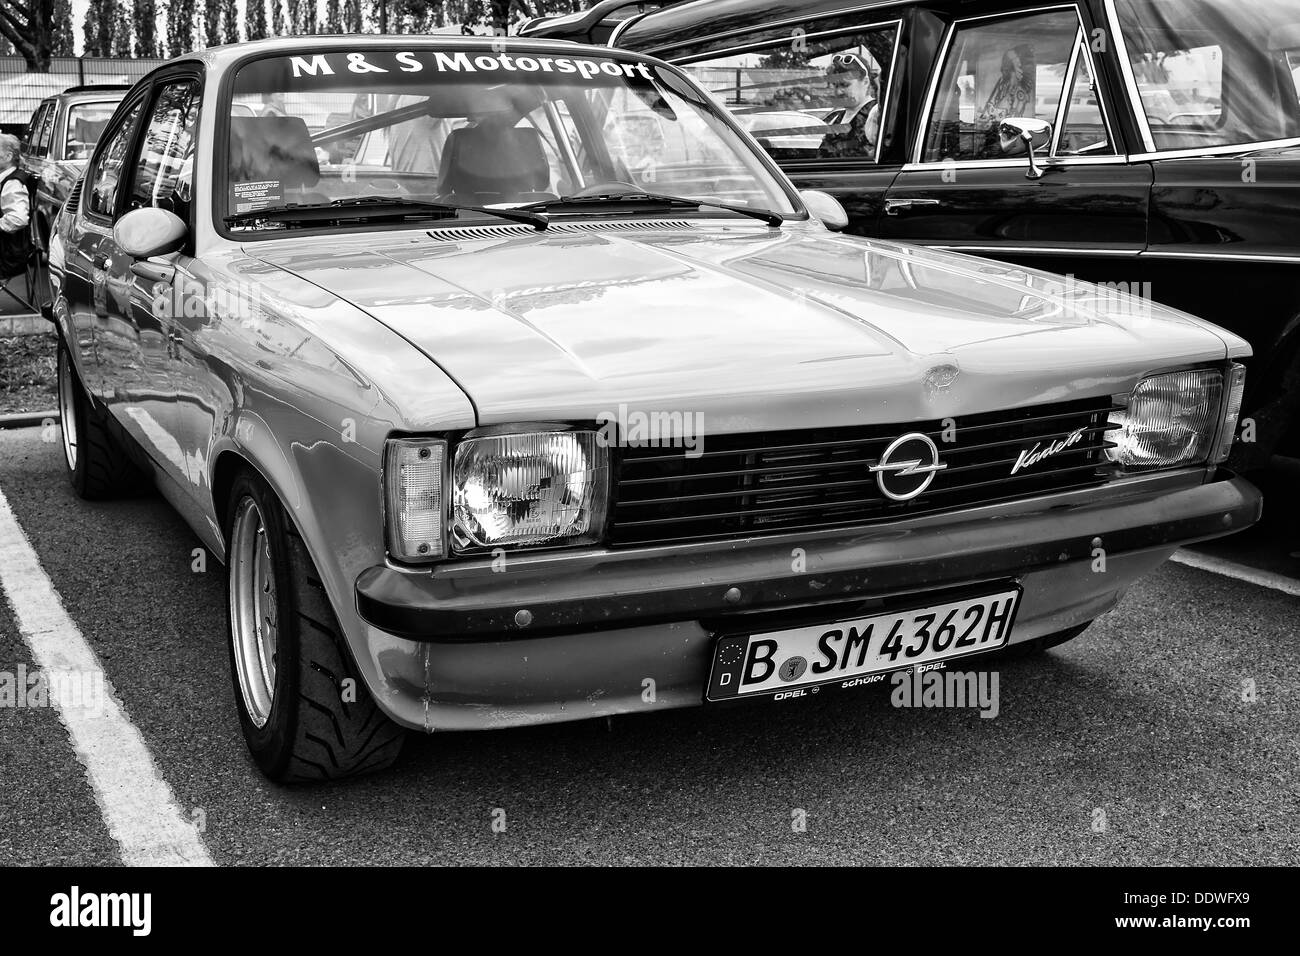 berlin may 11 car opel kadett c coupe black and white 26th stock photo royalty free image. Black Bedroom Furniture Sets. Home Design Ideas